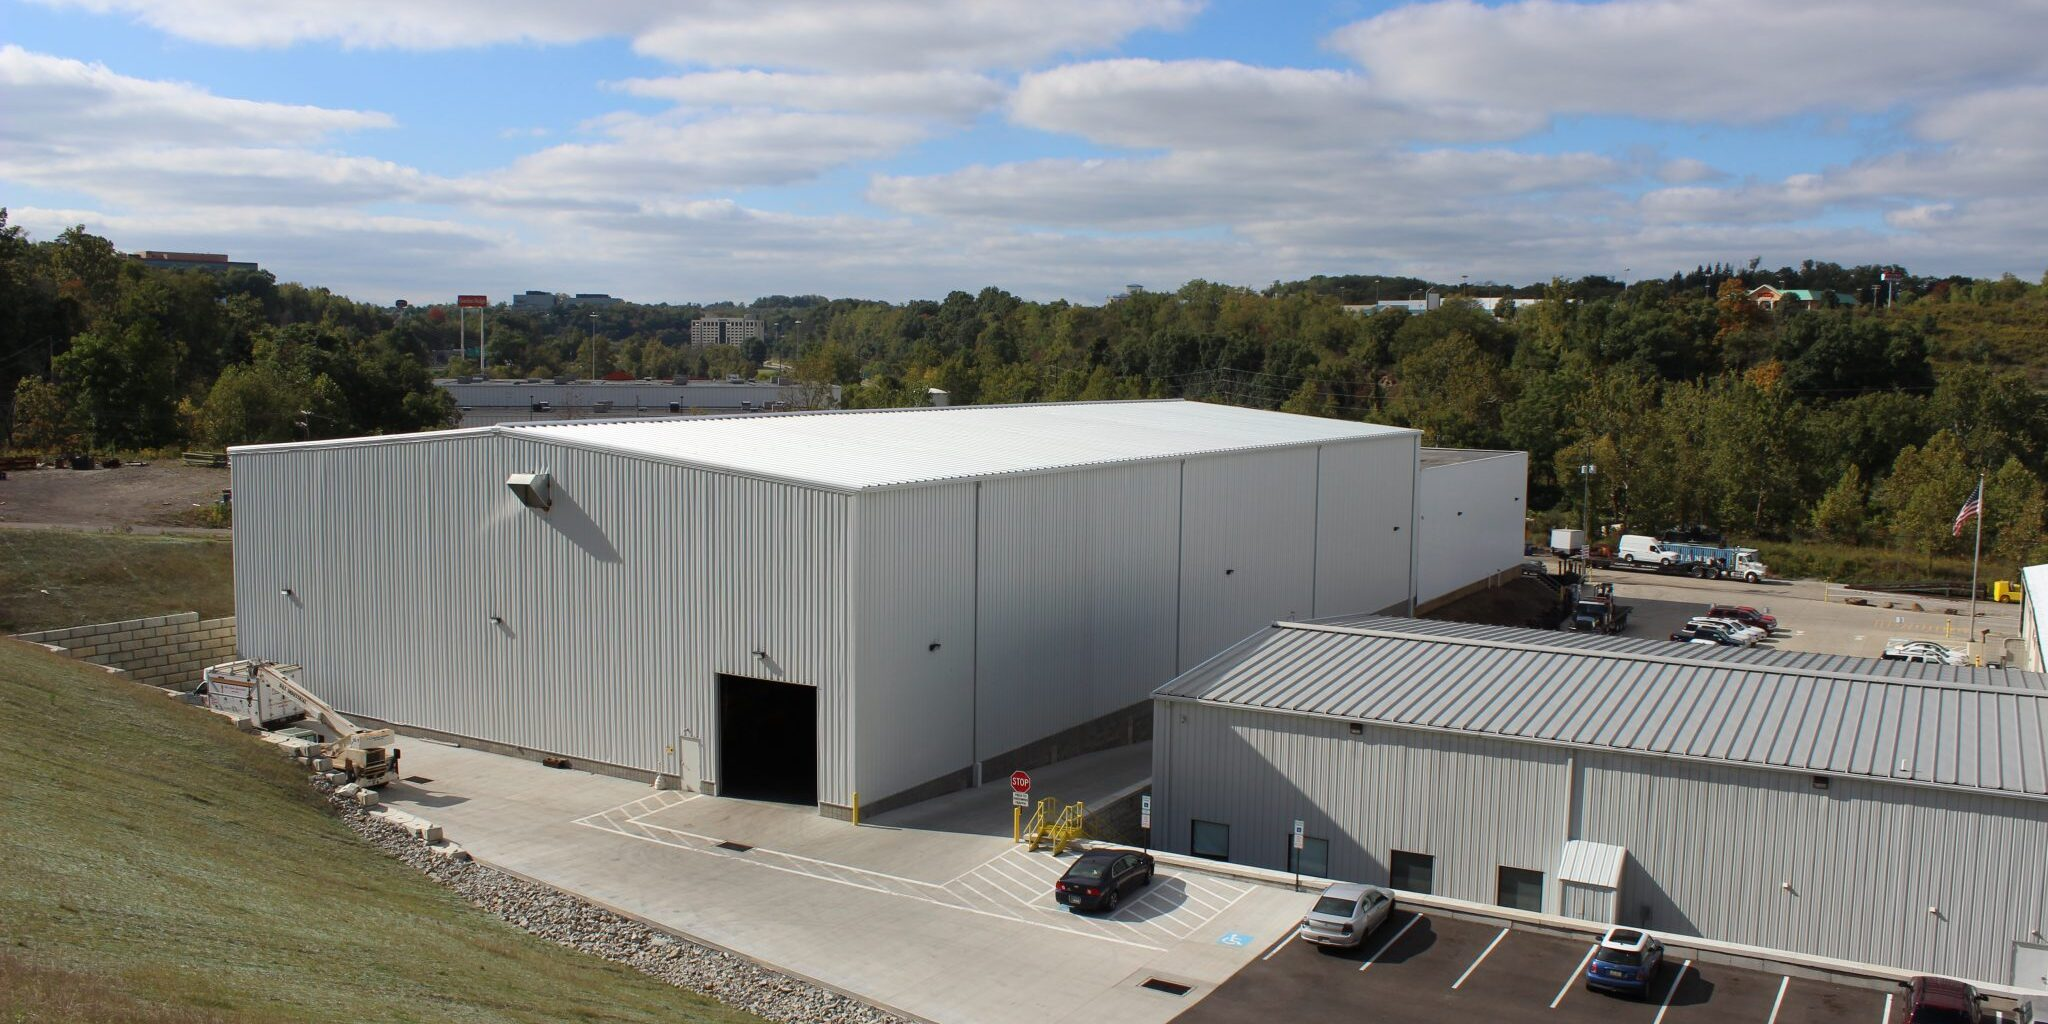 D&S Hoist and Crane HQ adjacent to H&K Equipment in Coraopolis, PA